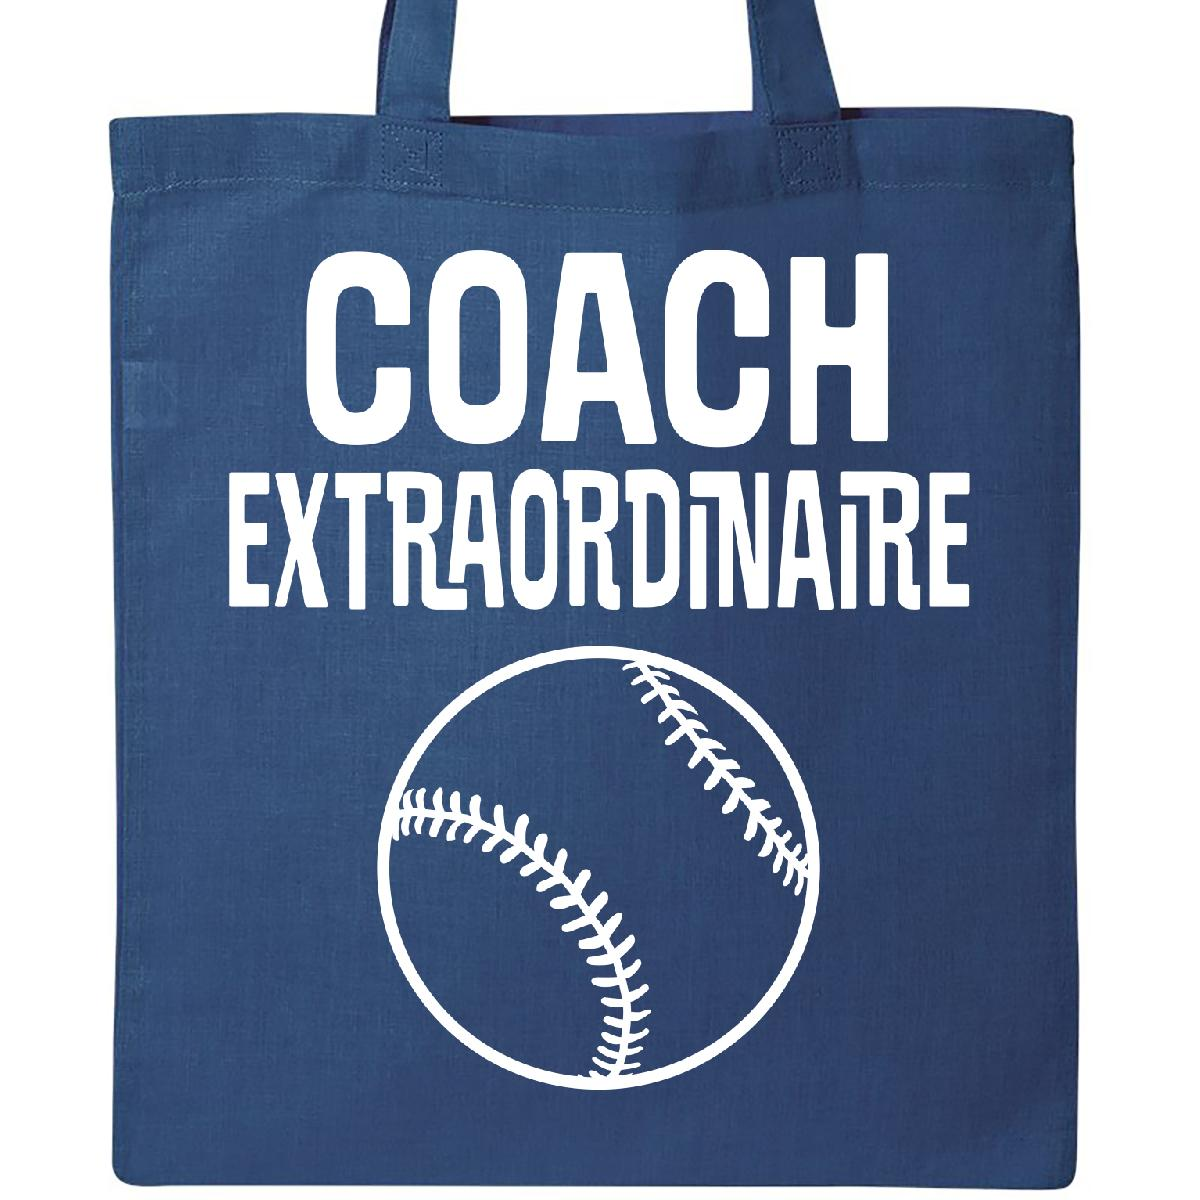 Inktastic Baseball Coach Extraordinaire Coaching Gift Tote Bag Staff Assistant by Inktastic